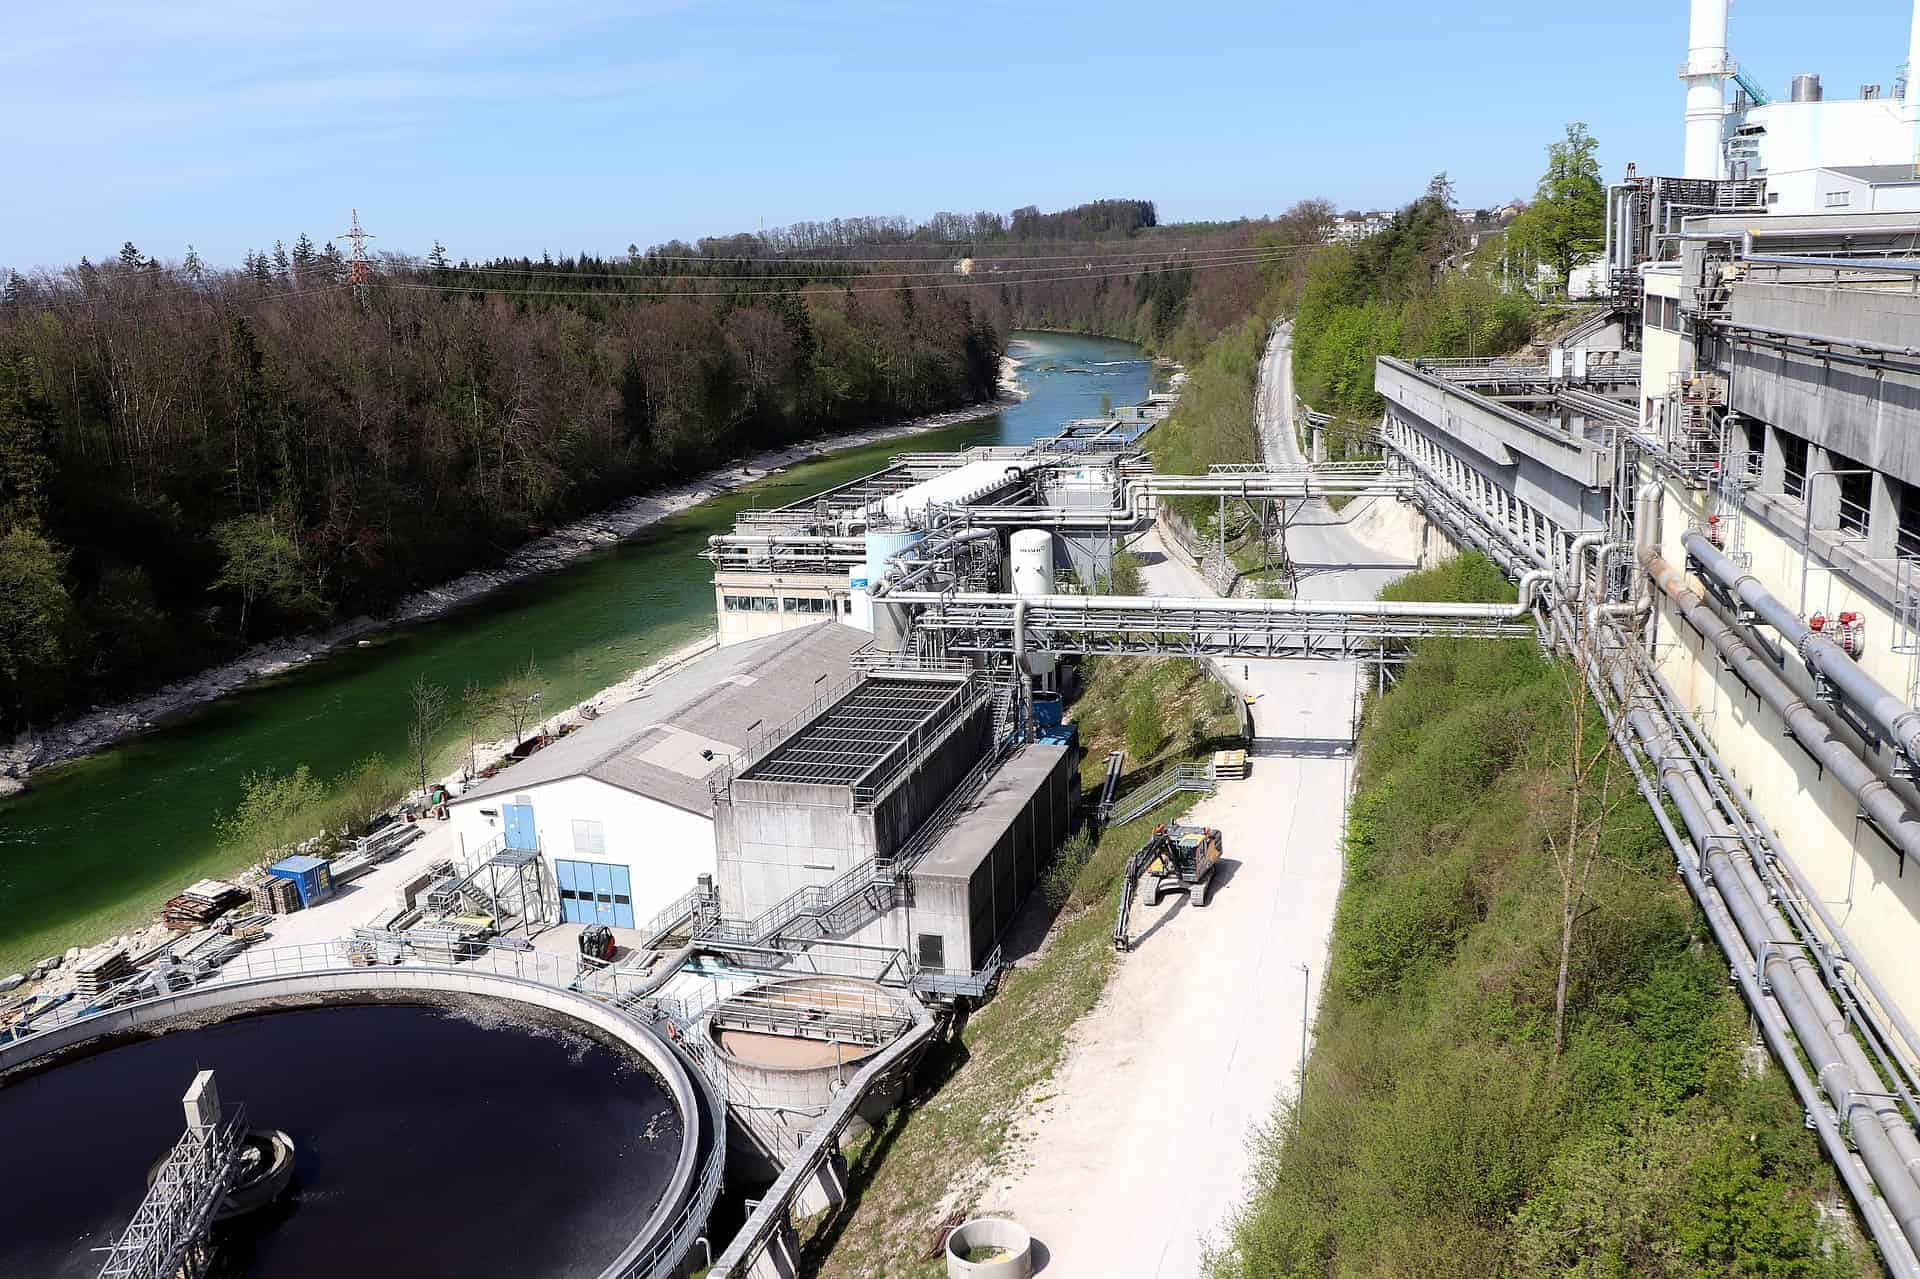 Wastewater management in beverage and food processing with inline viscosity monitoring